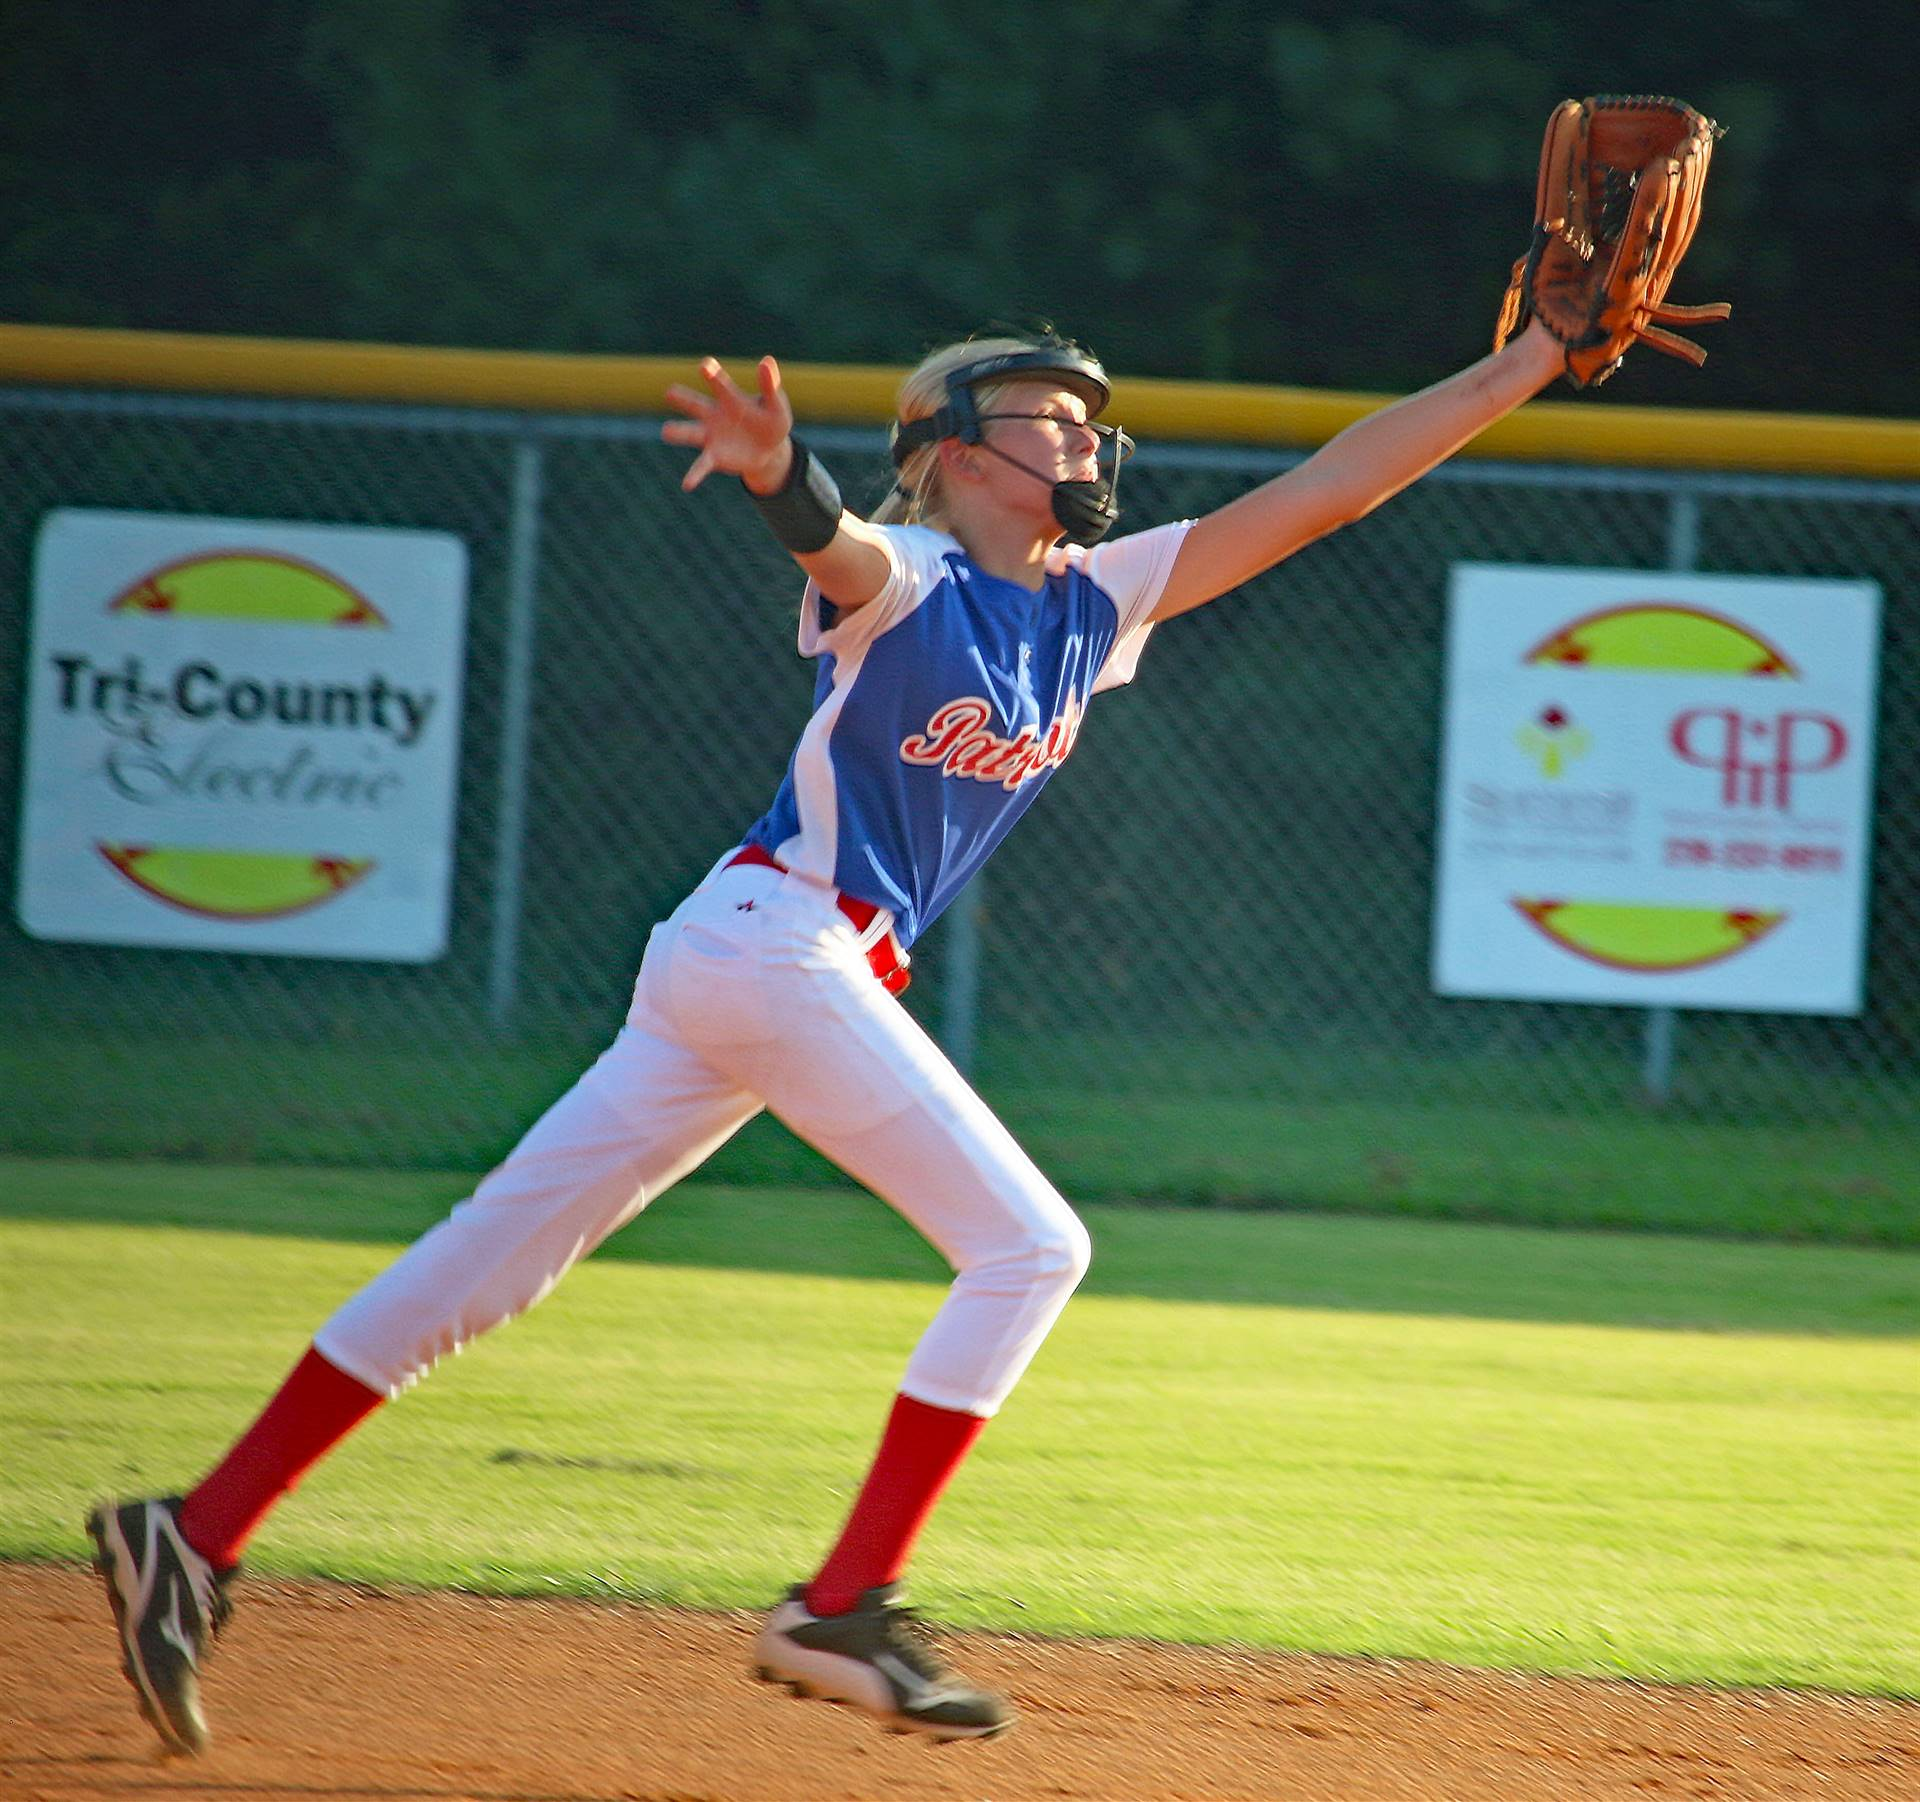 Lady patriot Softball 8-21-17